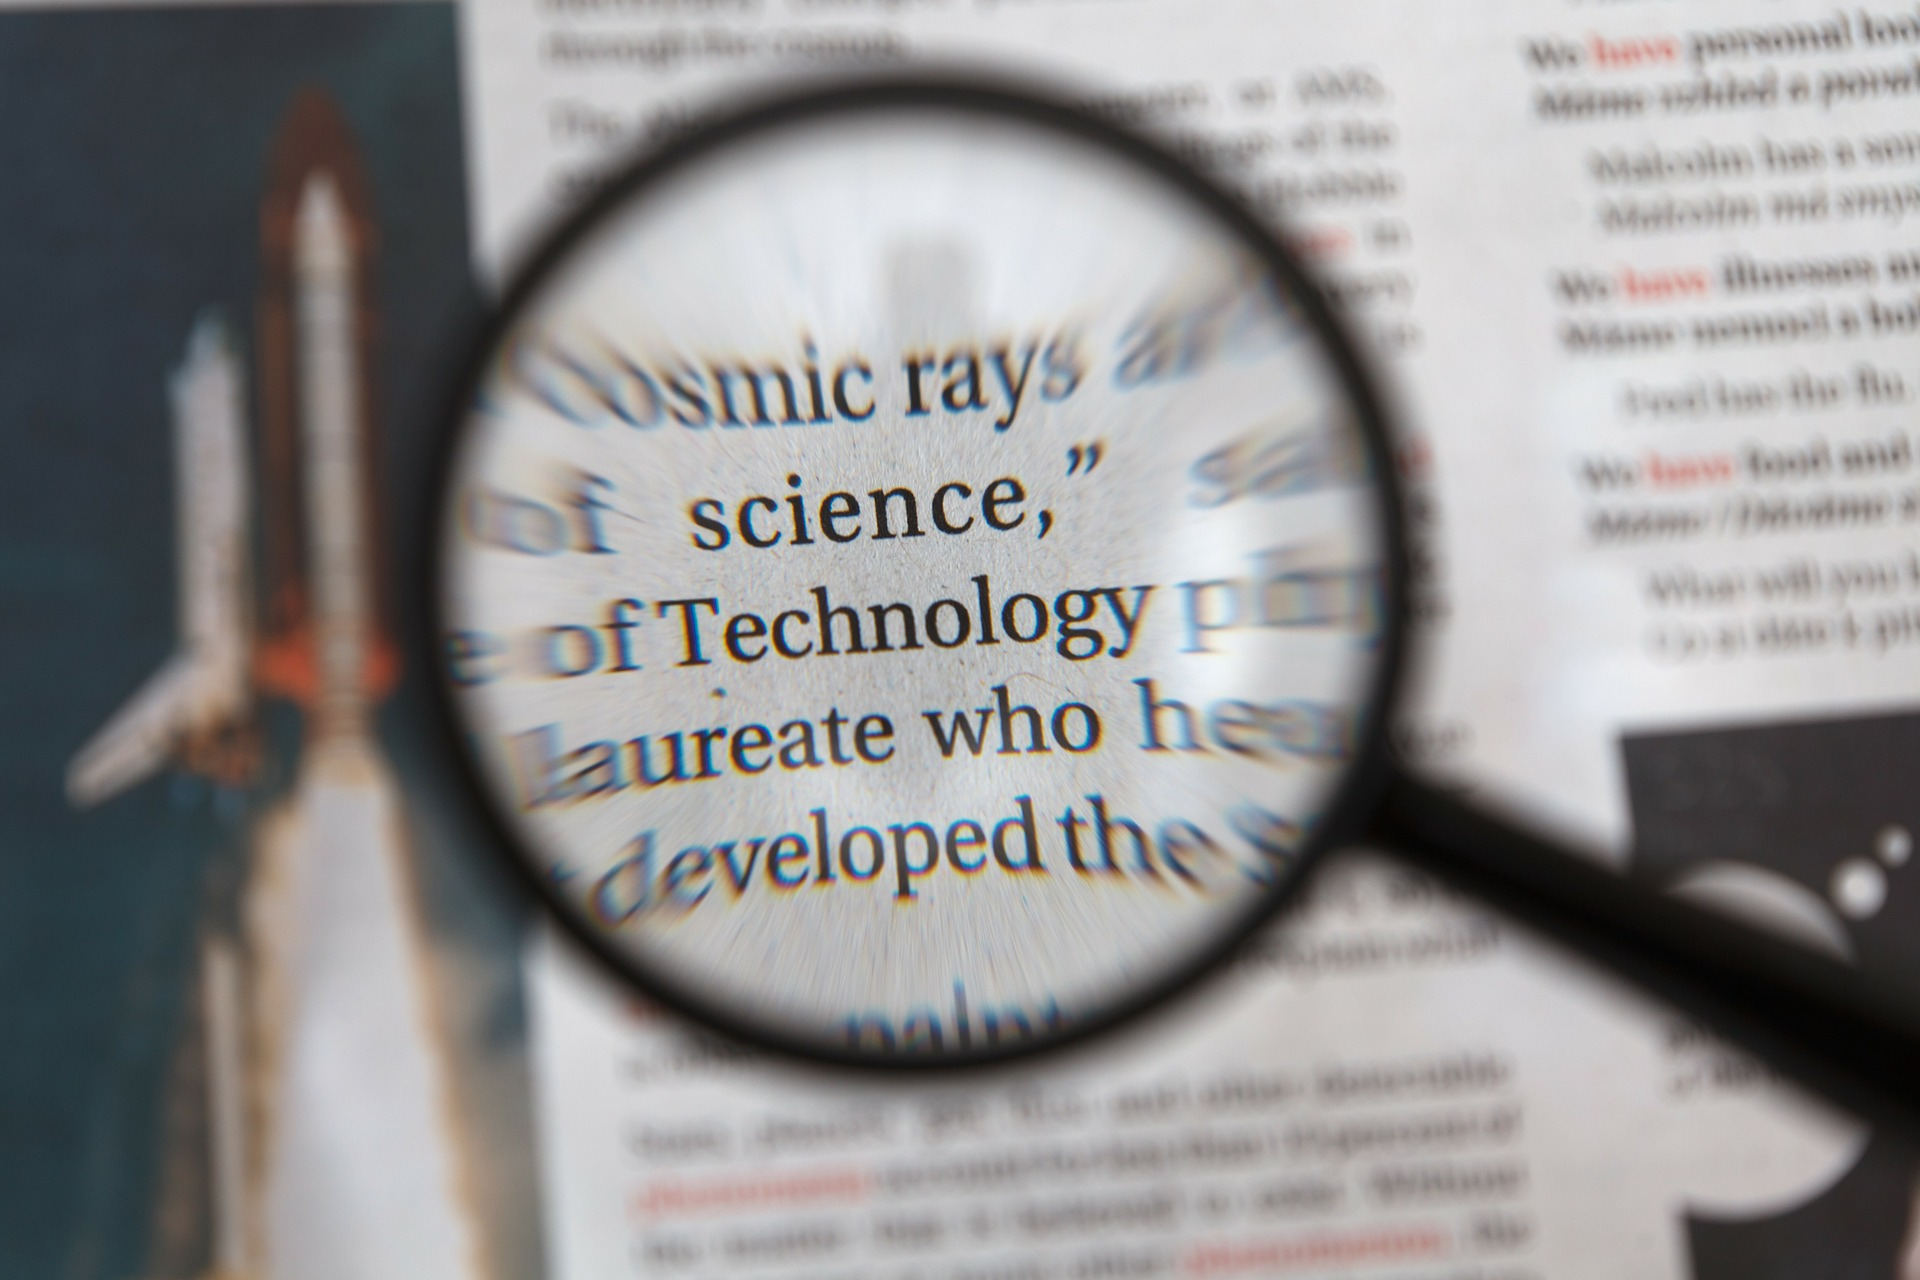 an image of a magnifying glass hovering over a newspaper article